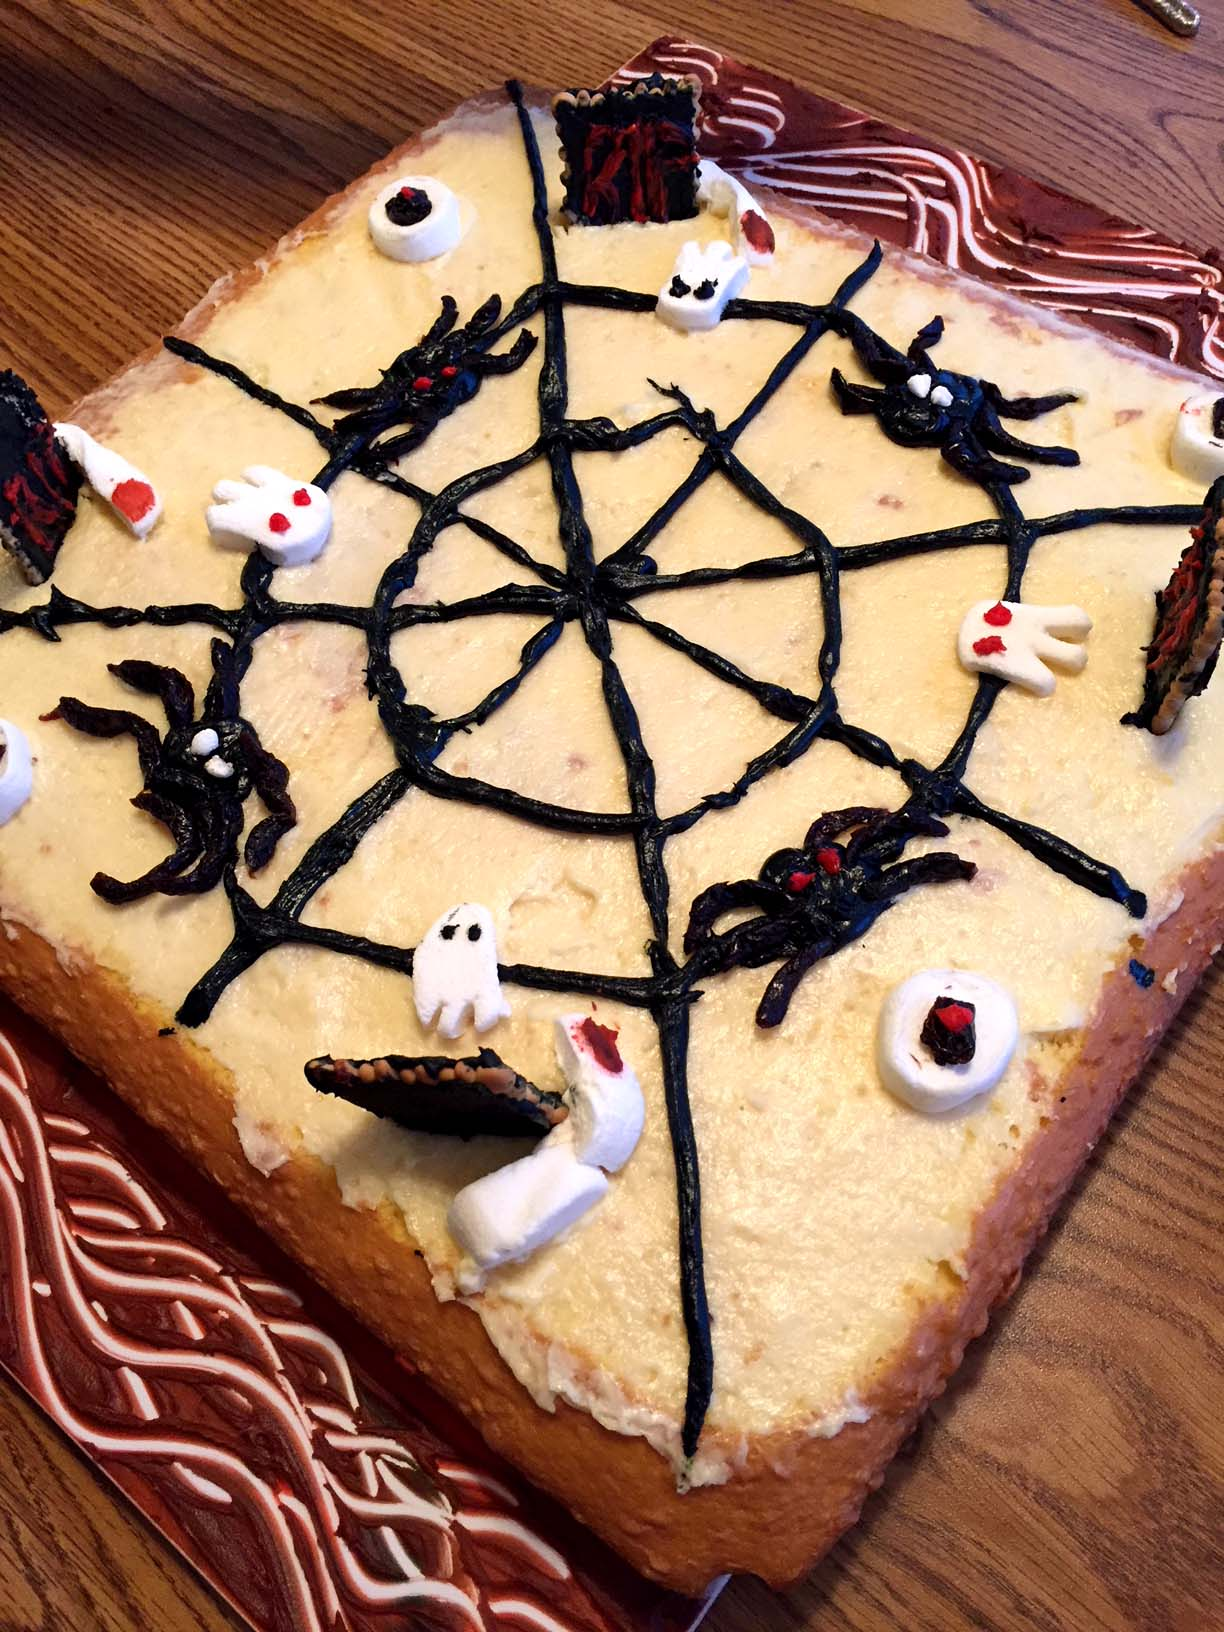 Easy Halloween Cake Decorating Ideas For Spooky Cake ...